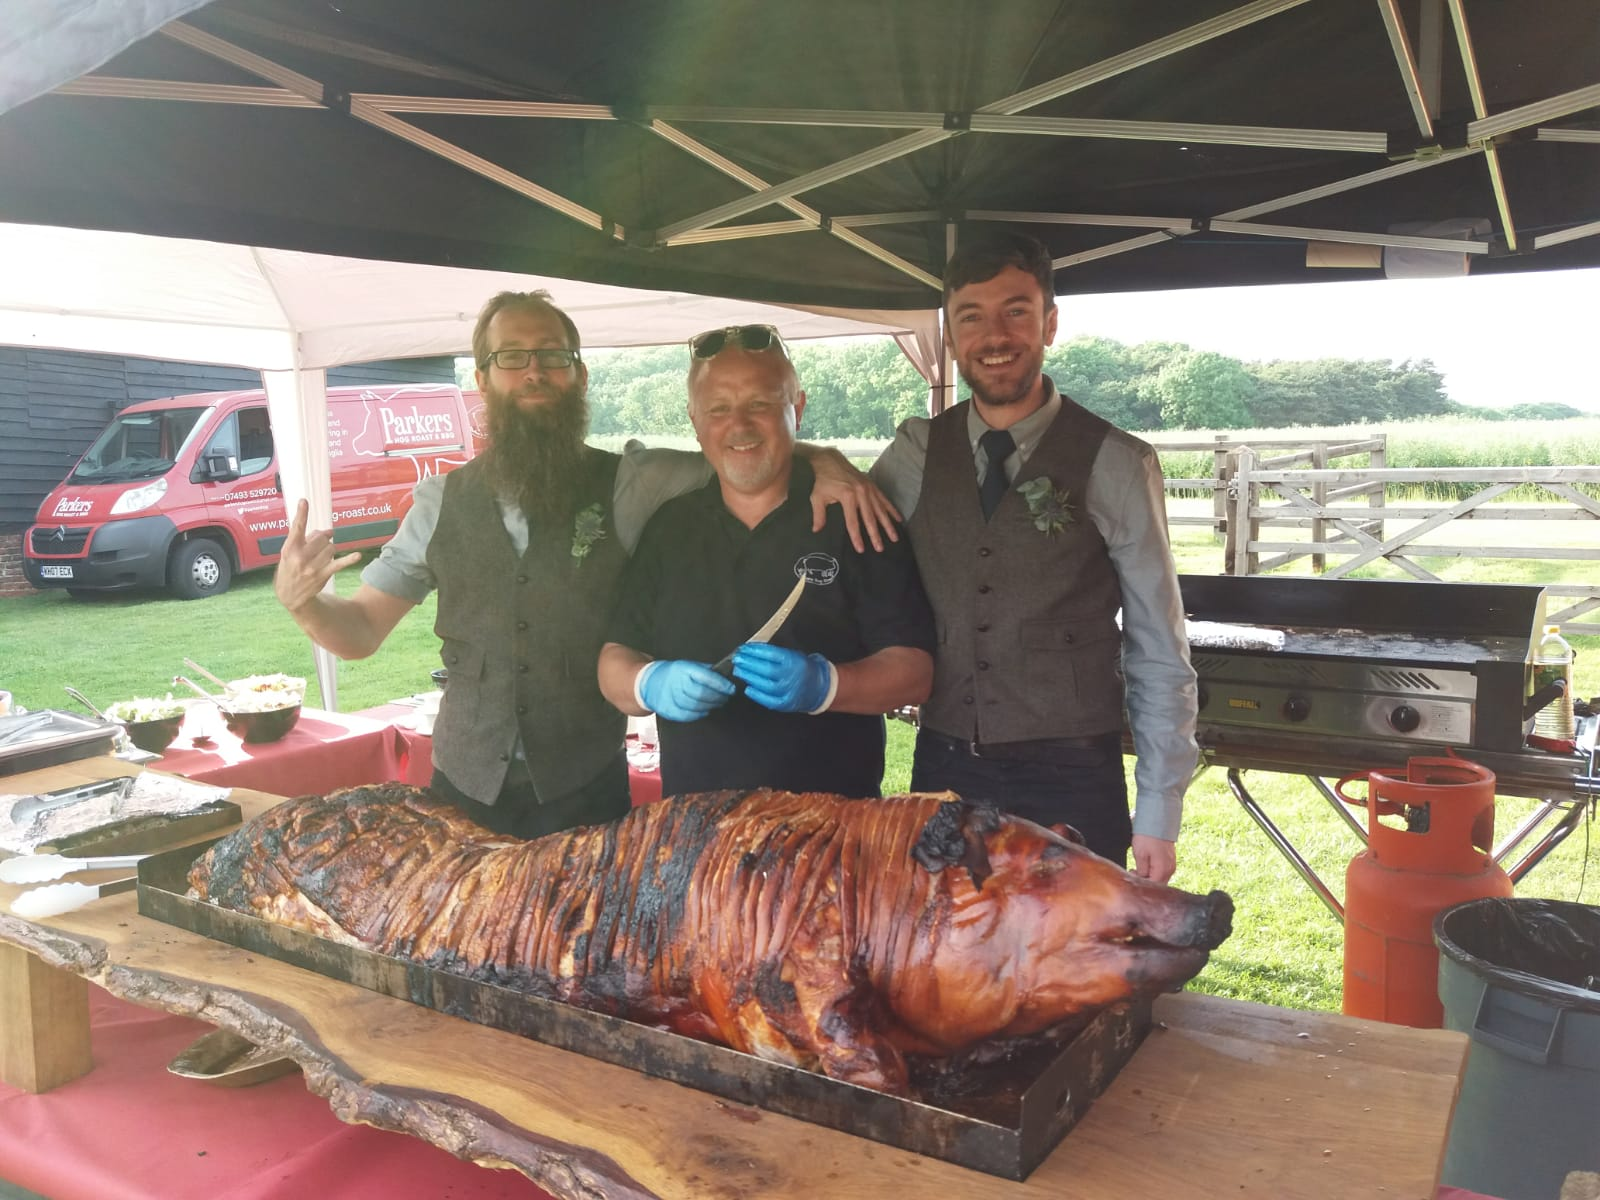 Bespoke Hog Roast and BBQ Catering